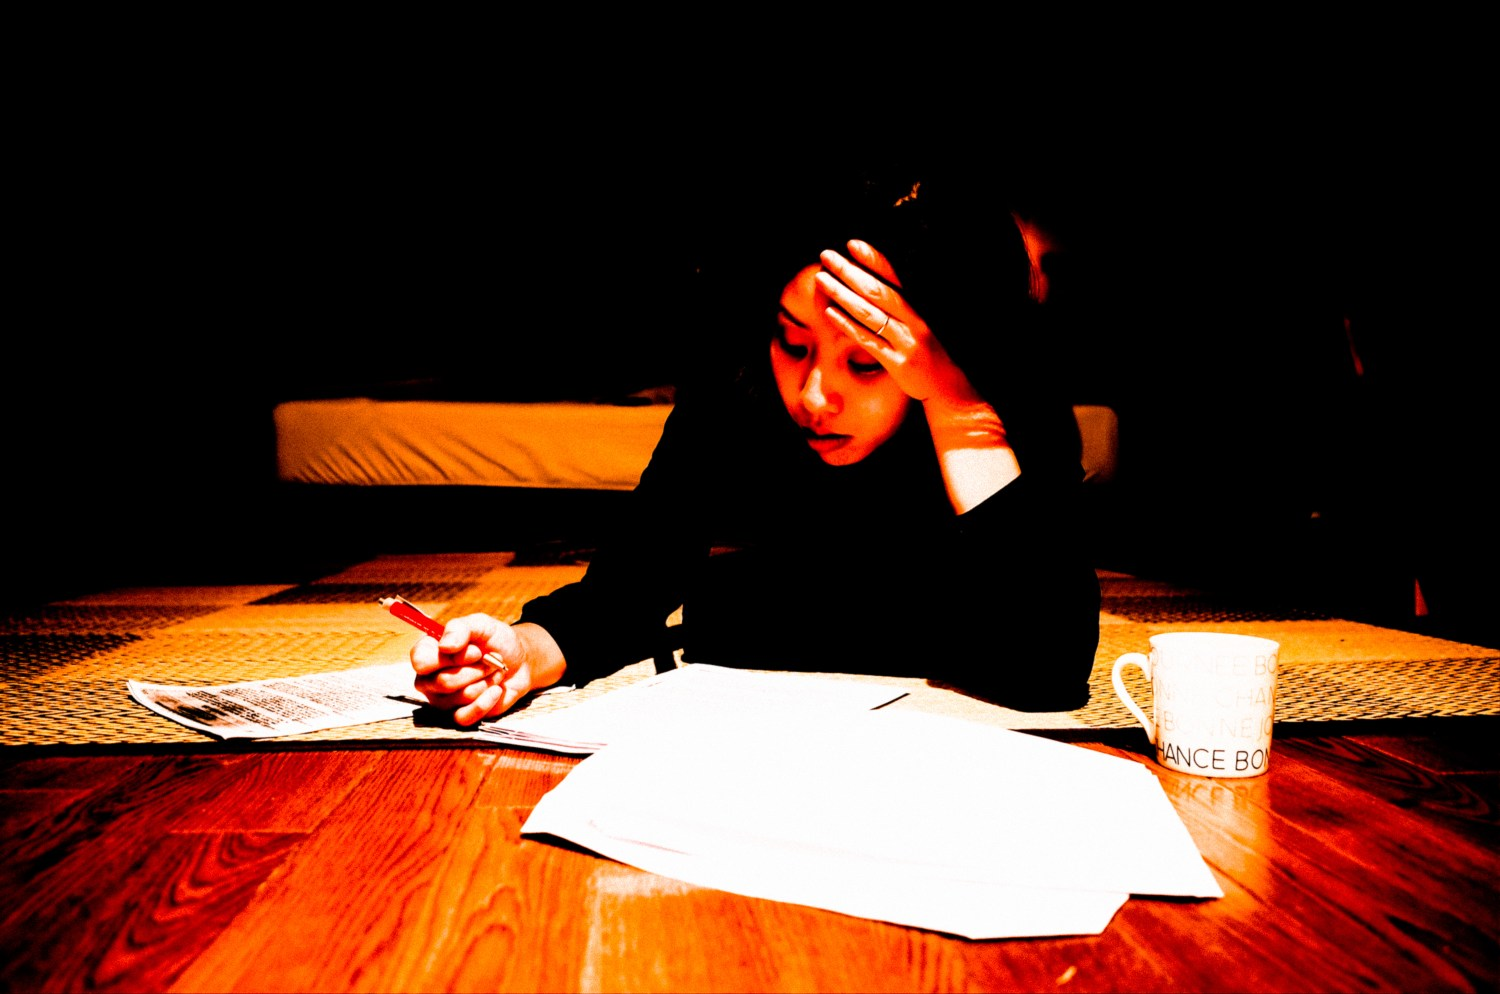 Cindy studying